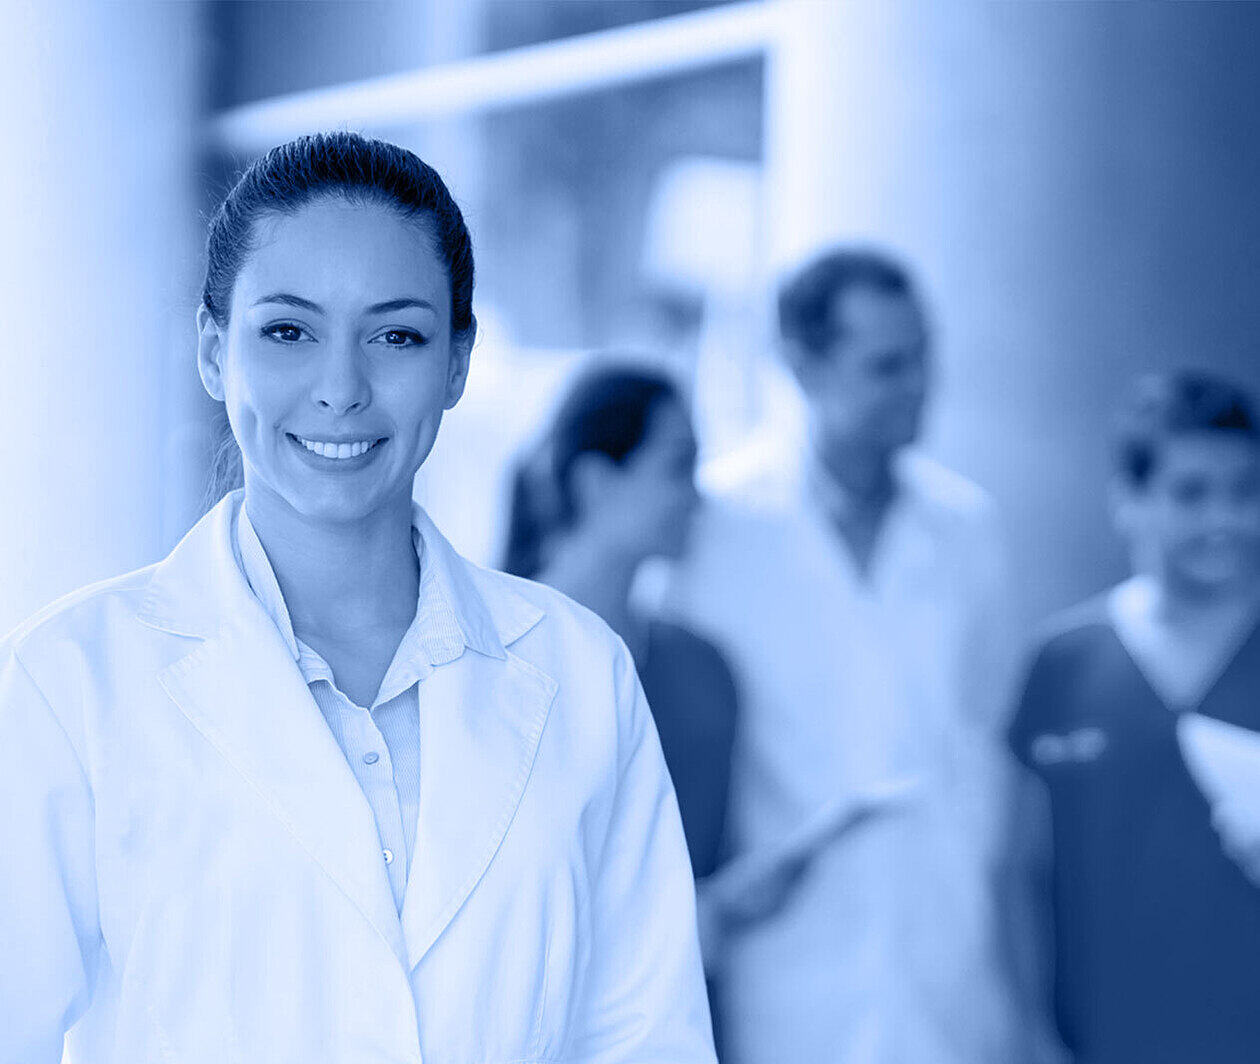 Leadership Training in Healthcare: How to Build Resilience and Personal Development